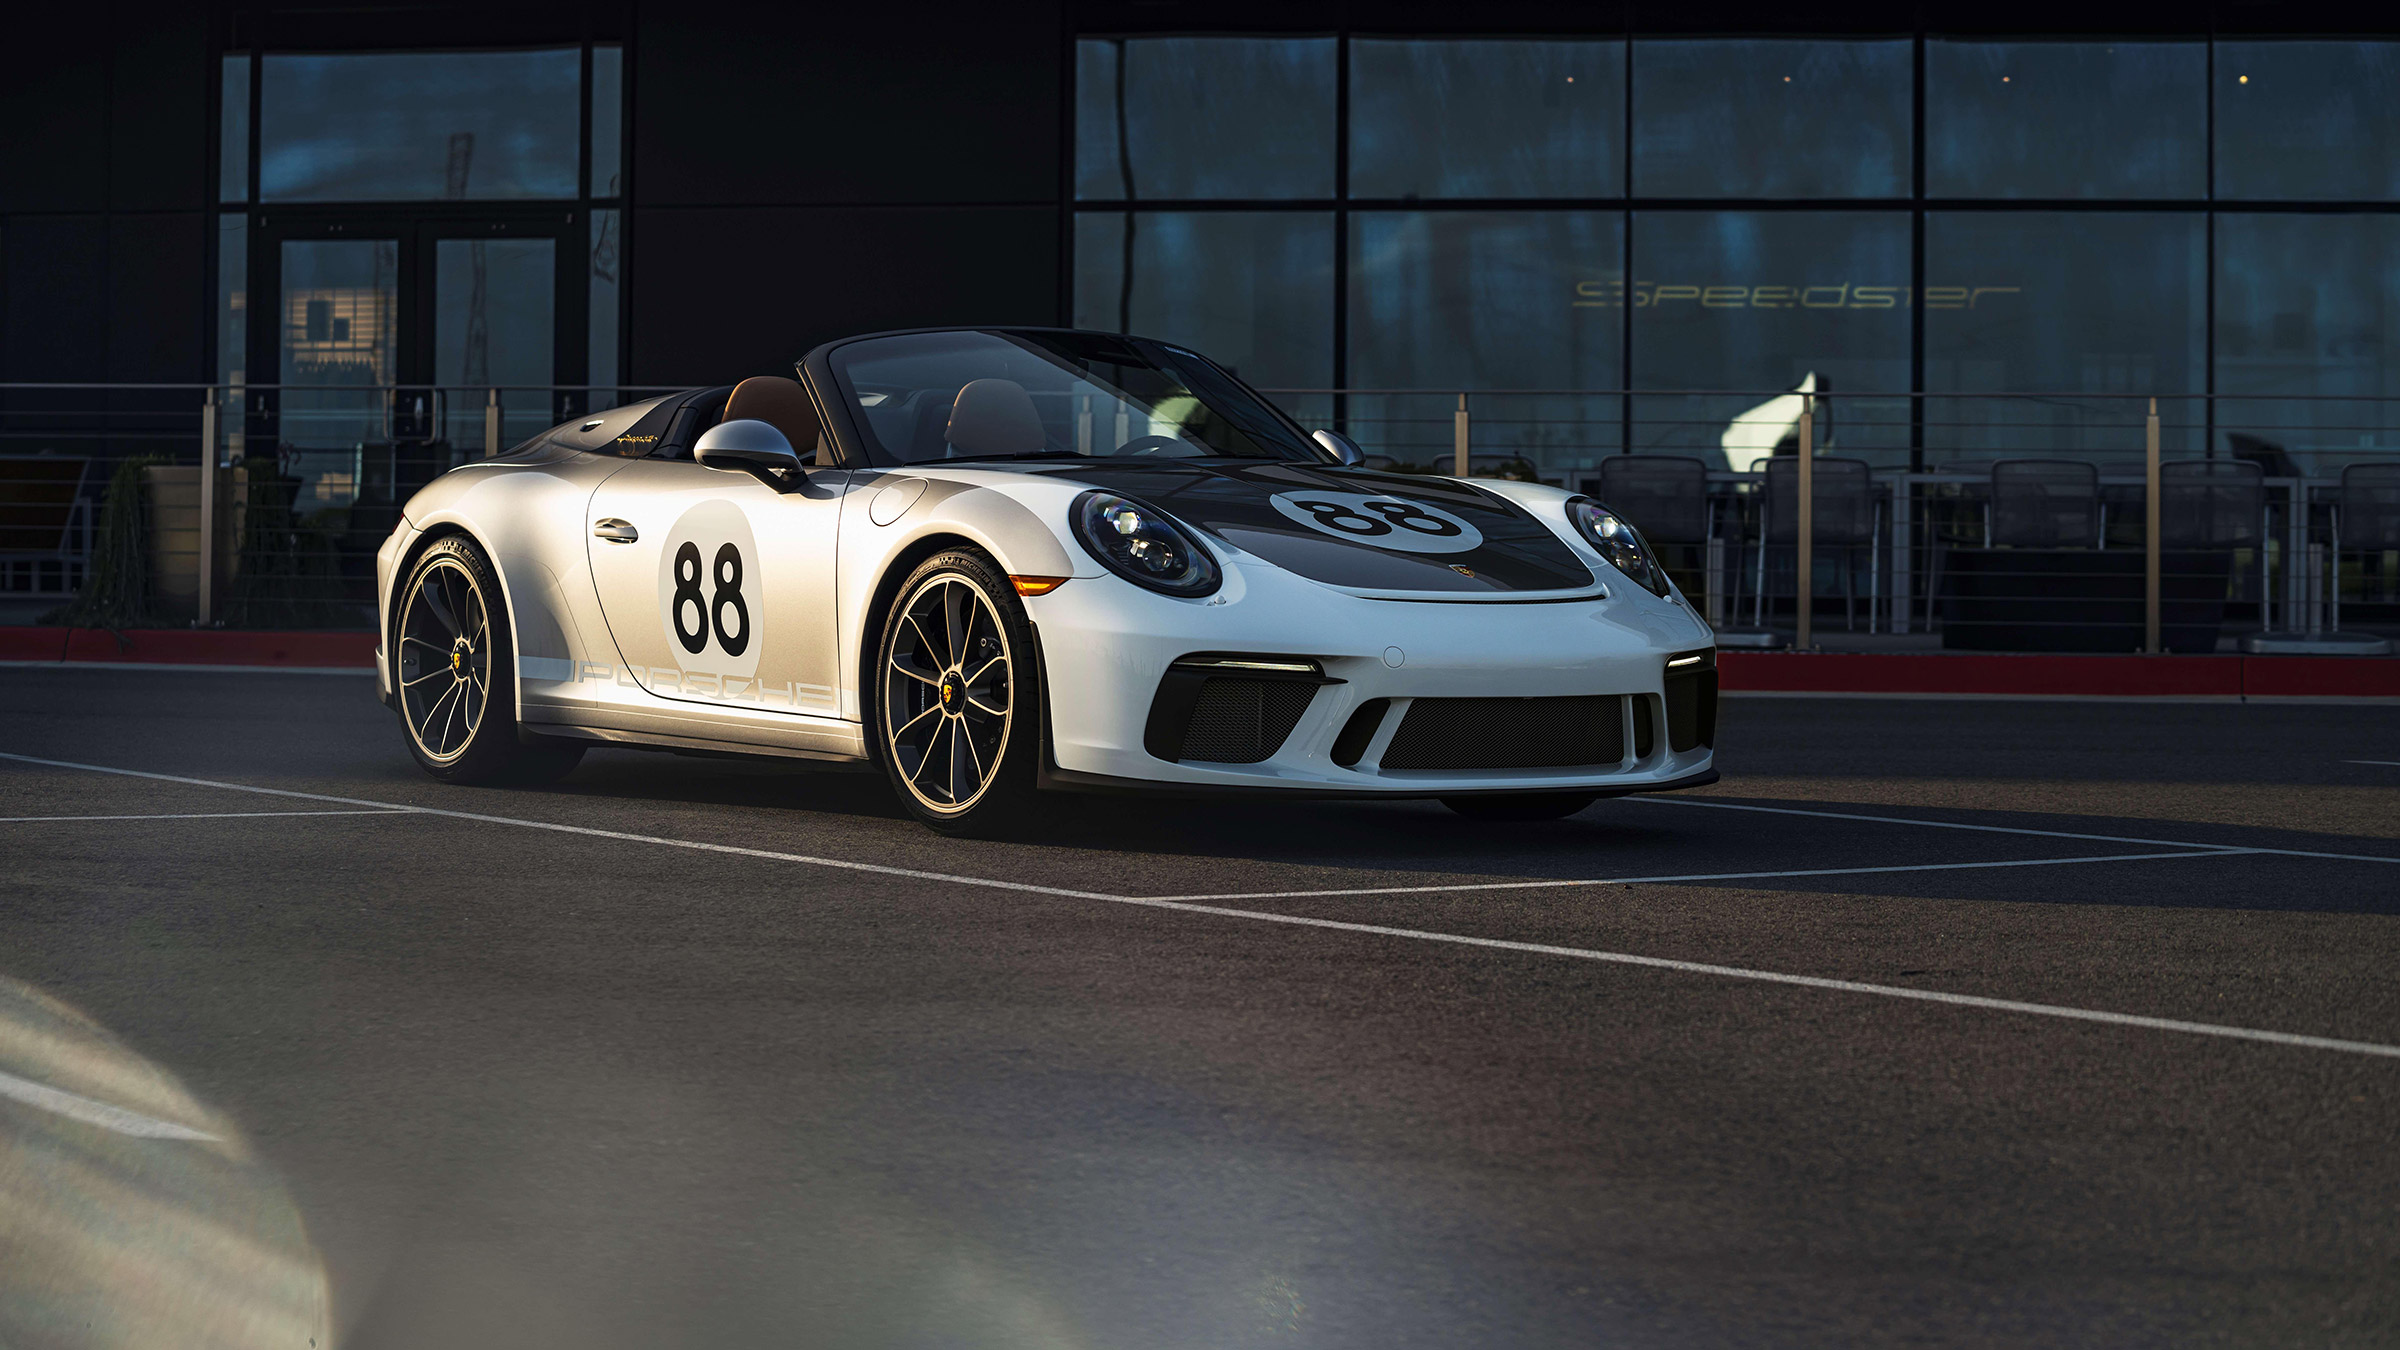 Porsche to auction final 991-series 911 in aid of Covid-19 fundraiser